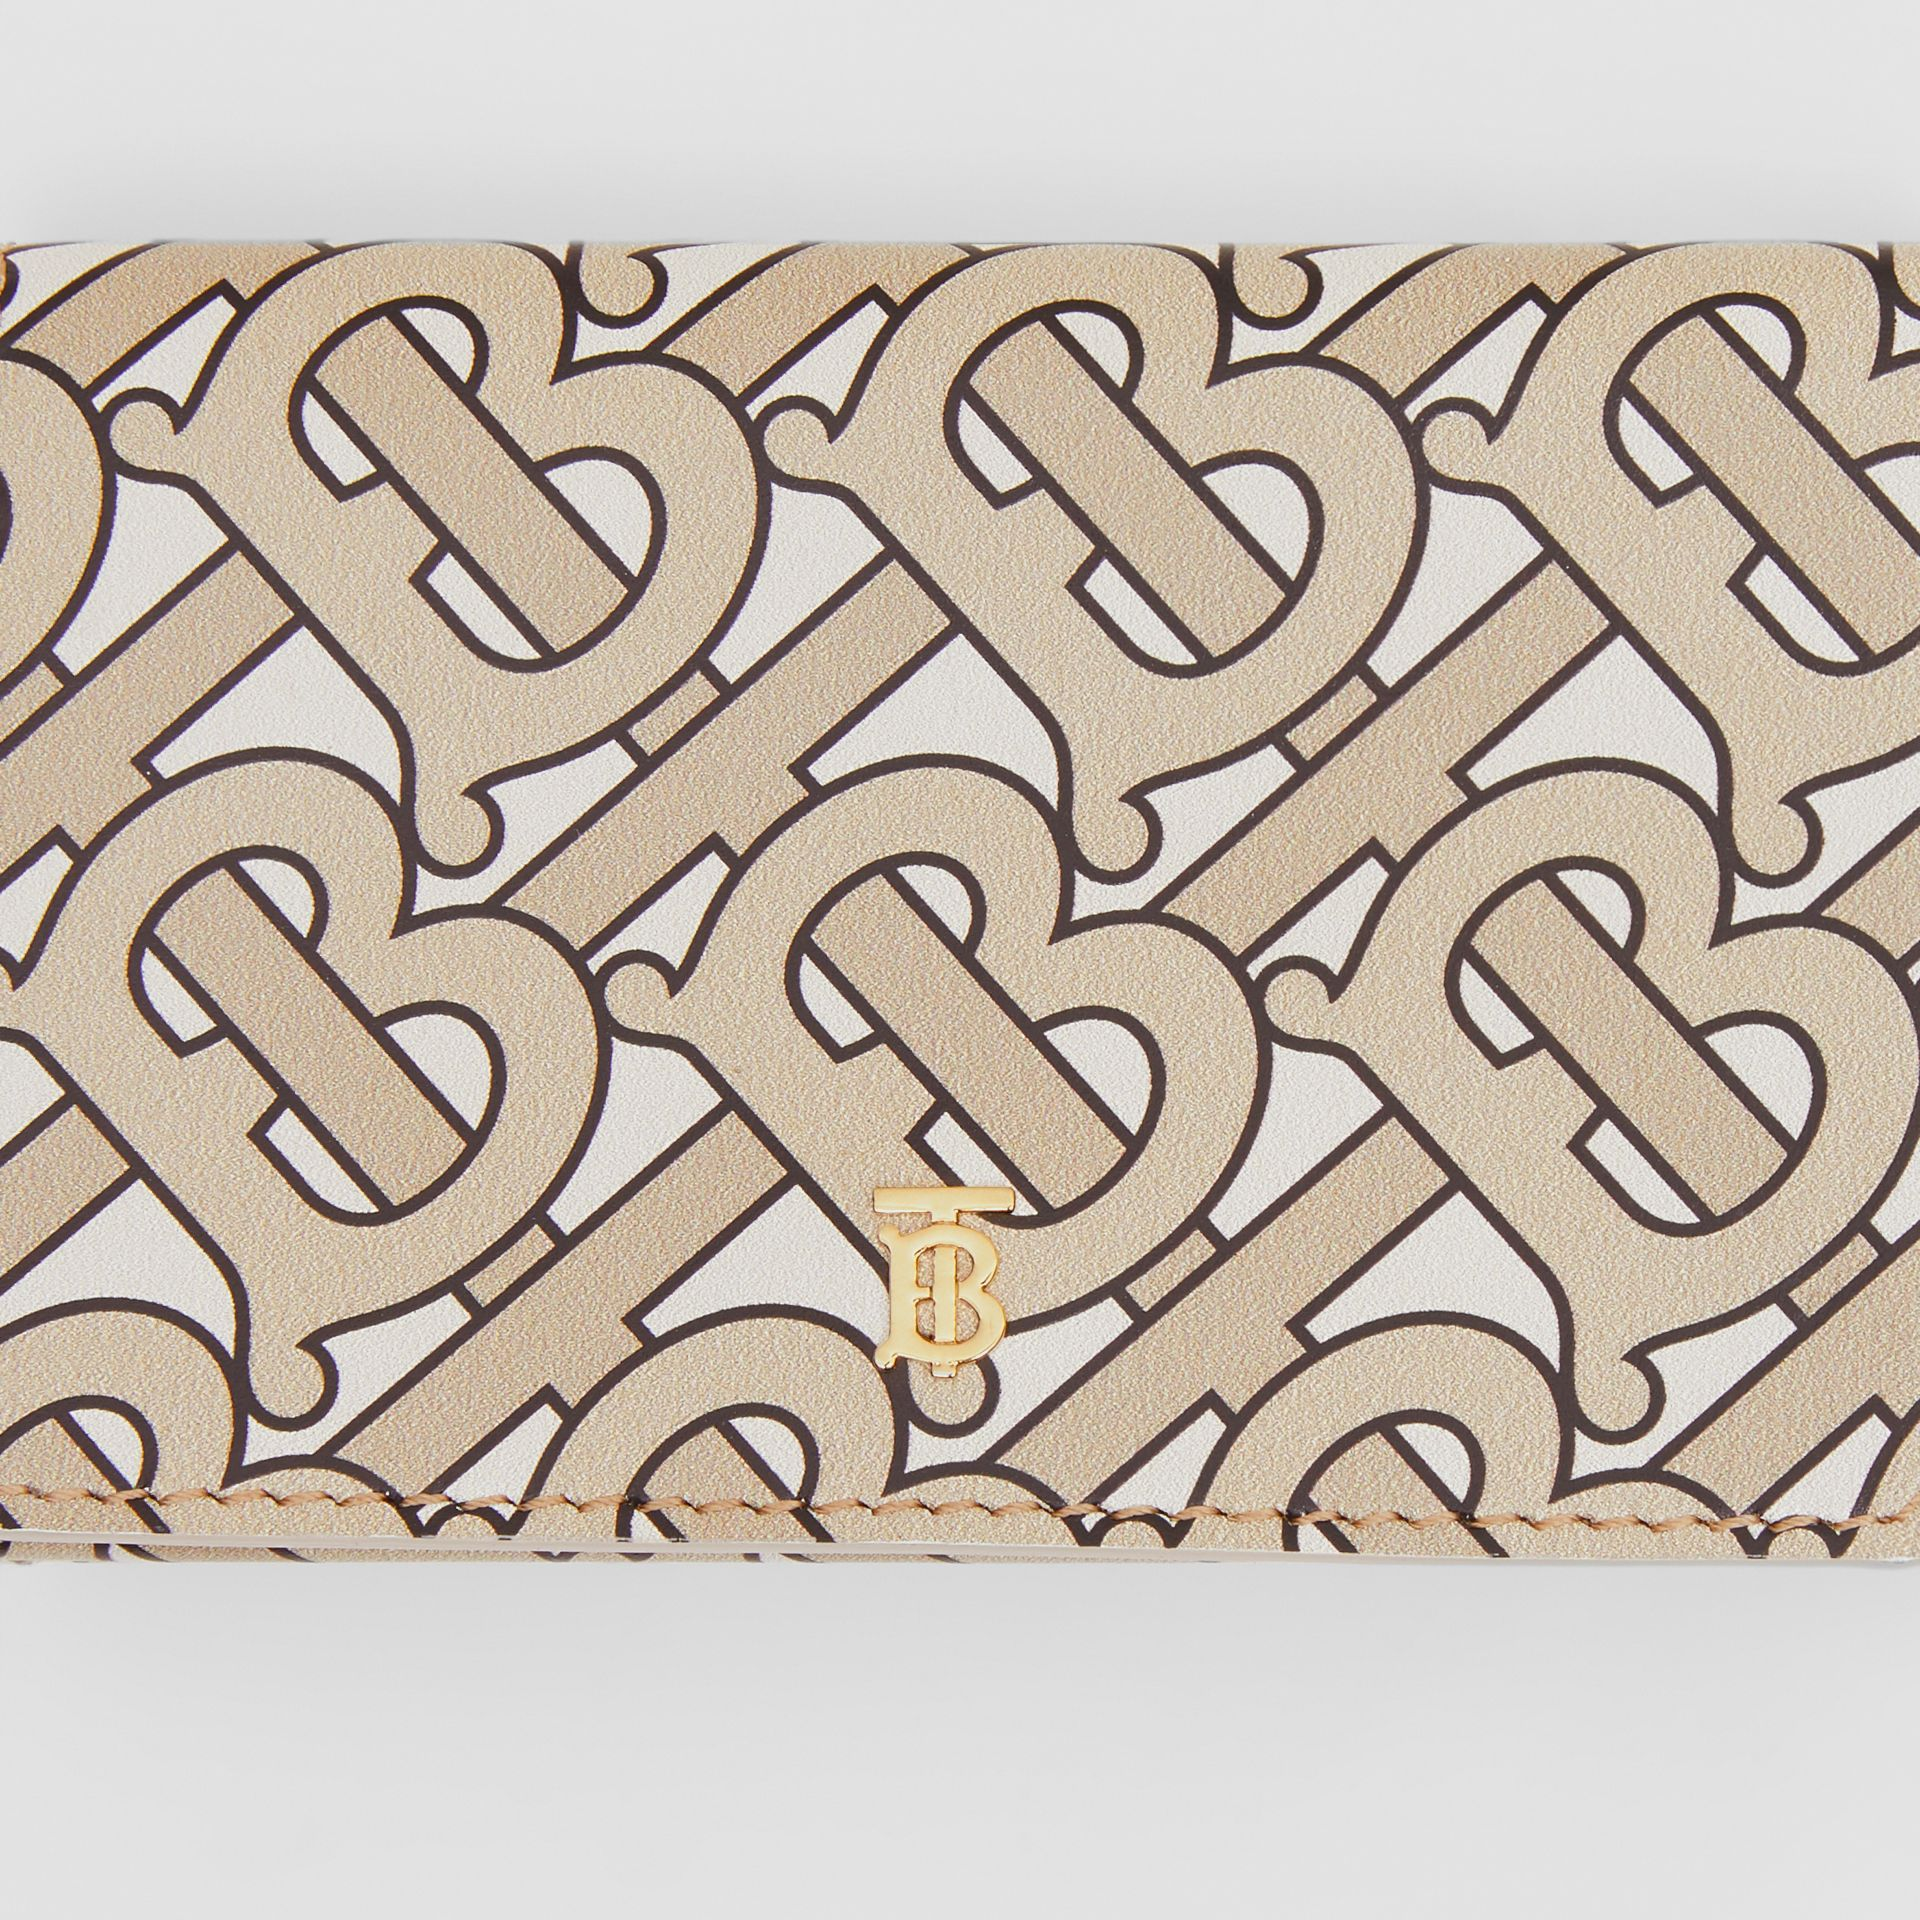 Small Monogram Print Leather Folding Wallet in Beige - Women | Burberry United Kingdom - gallery image 1